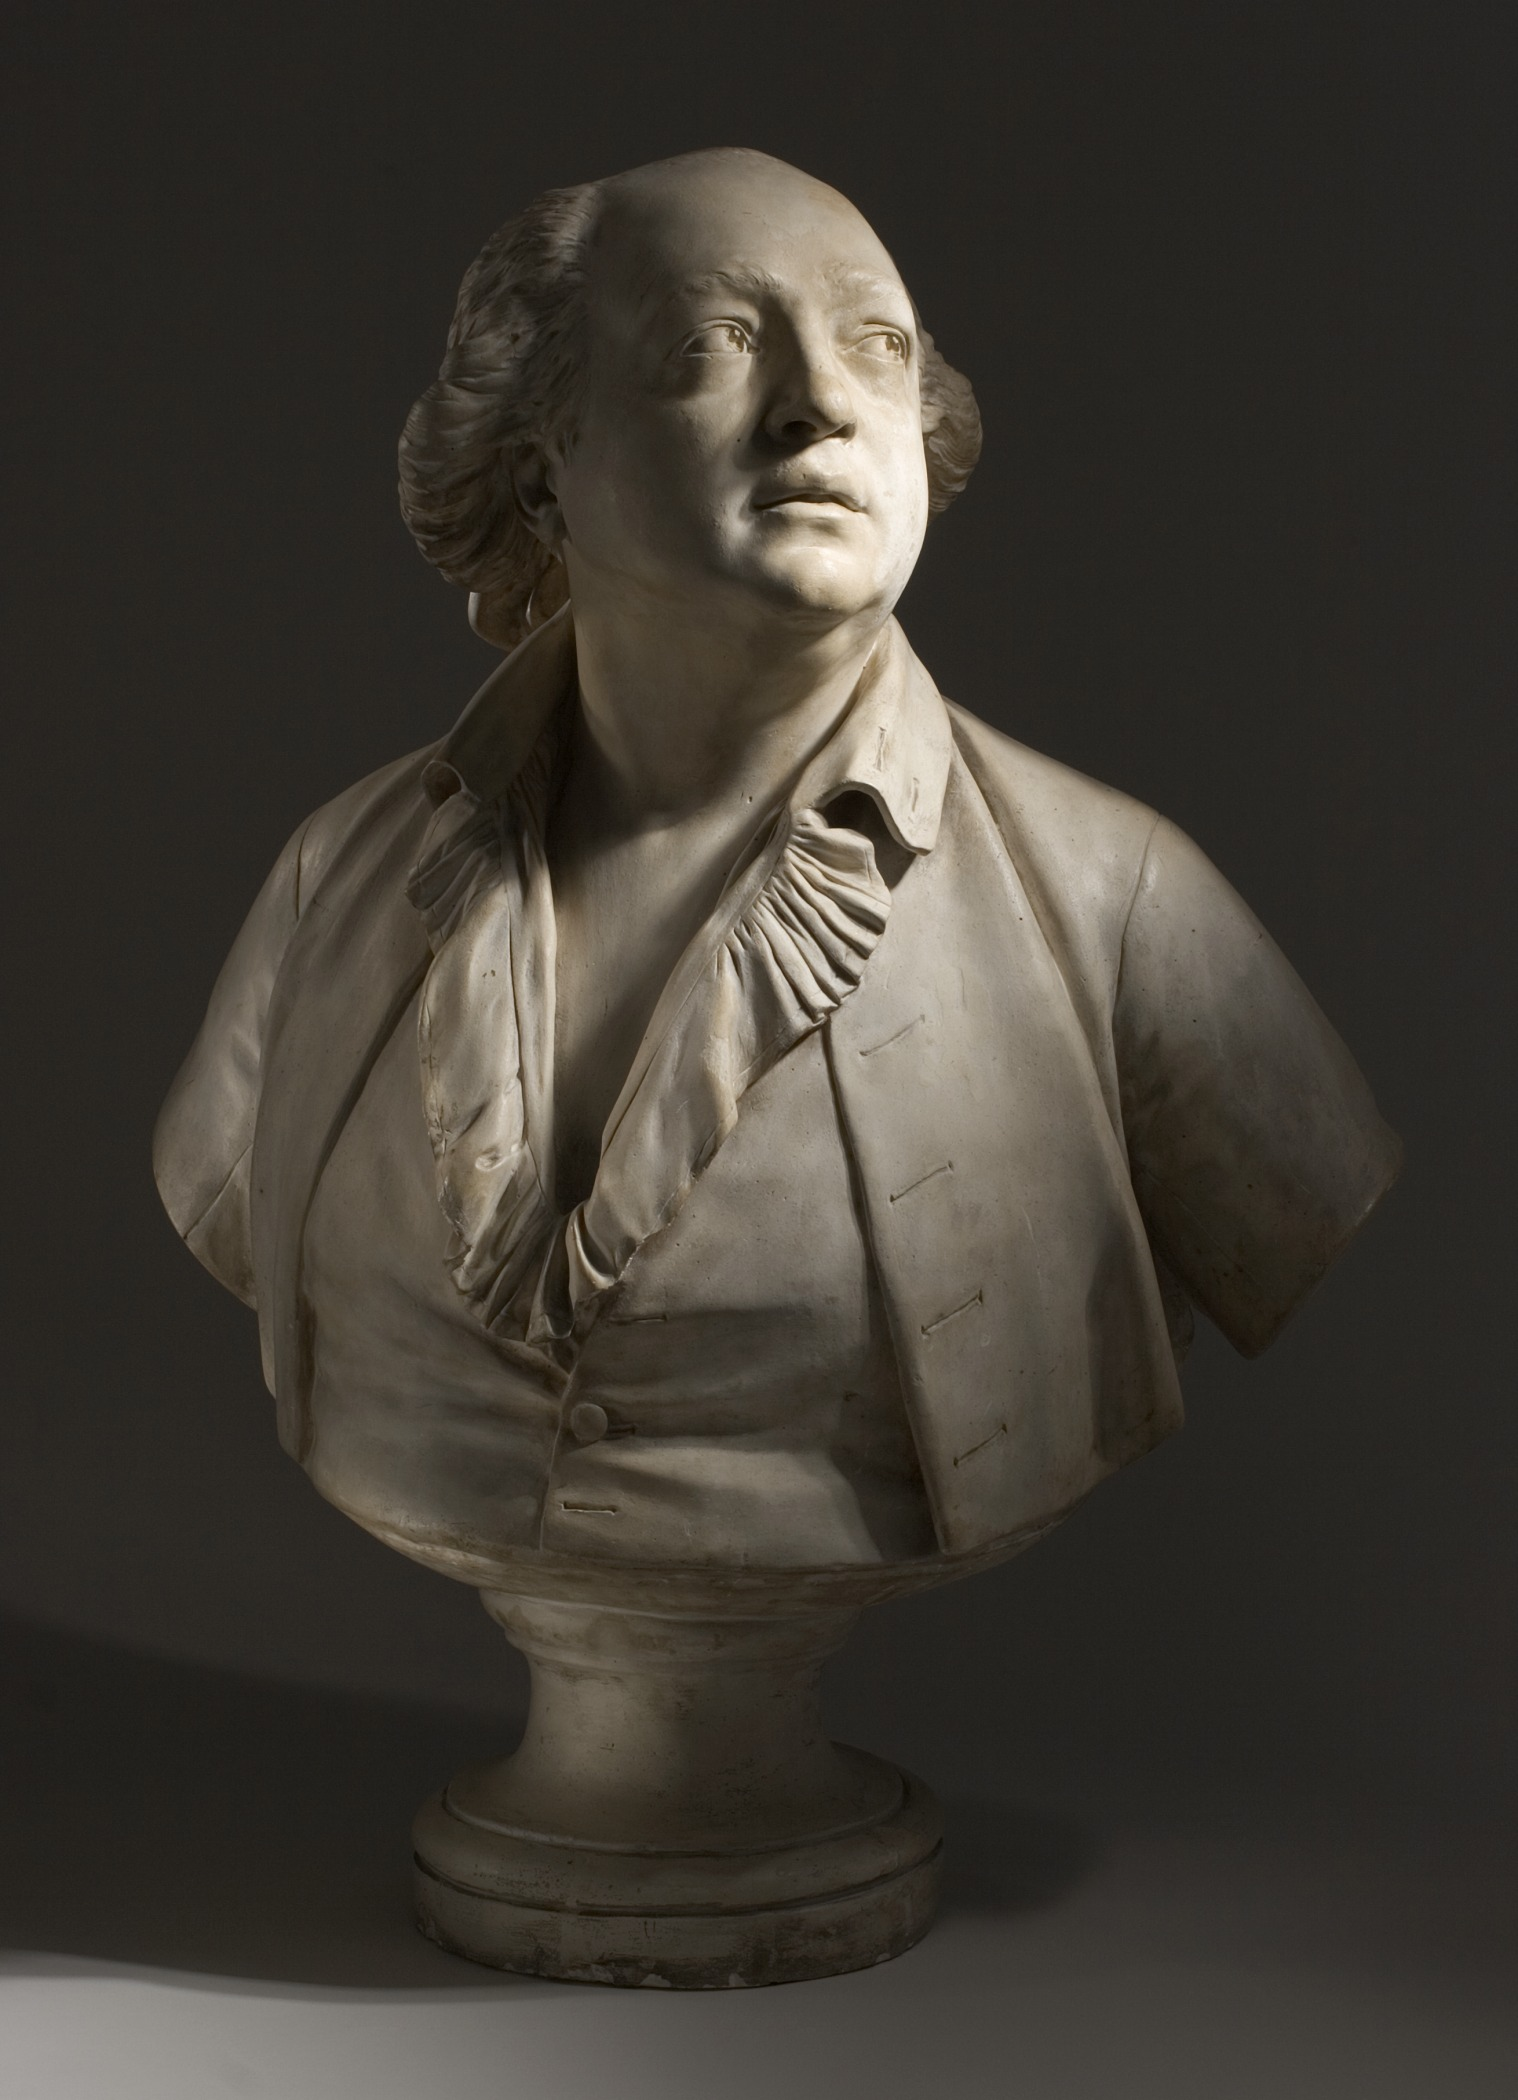 Jean-Antoine Houdon, Portrait of Giuseppe Balsamo (called Count Alessandro Cagliostro), circa 1786, Los Angeles County Museum of Art